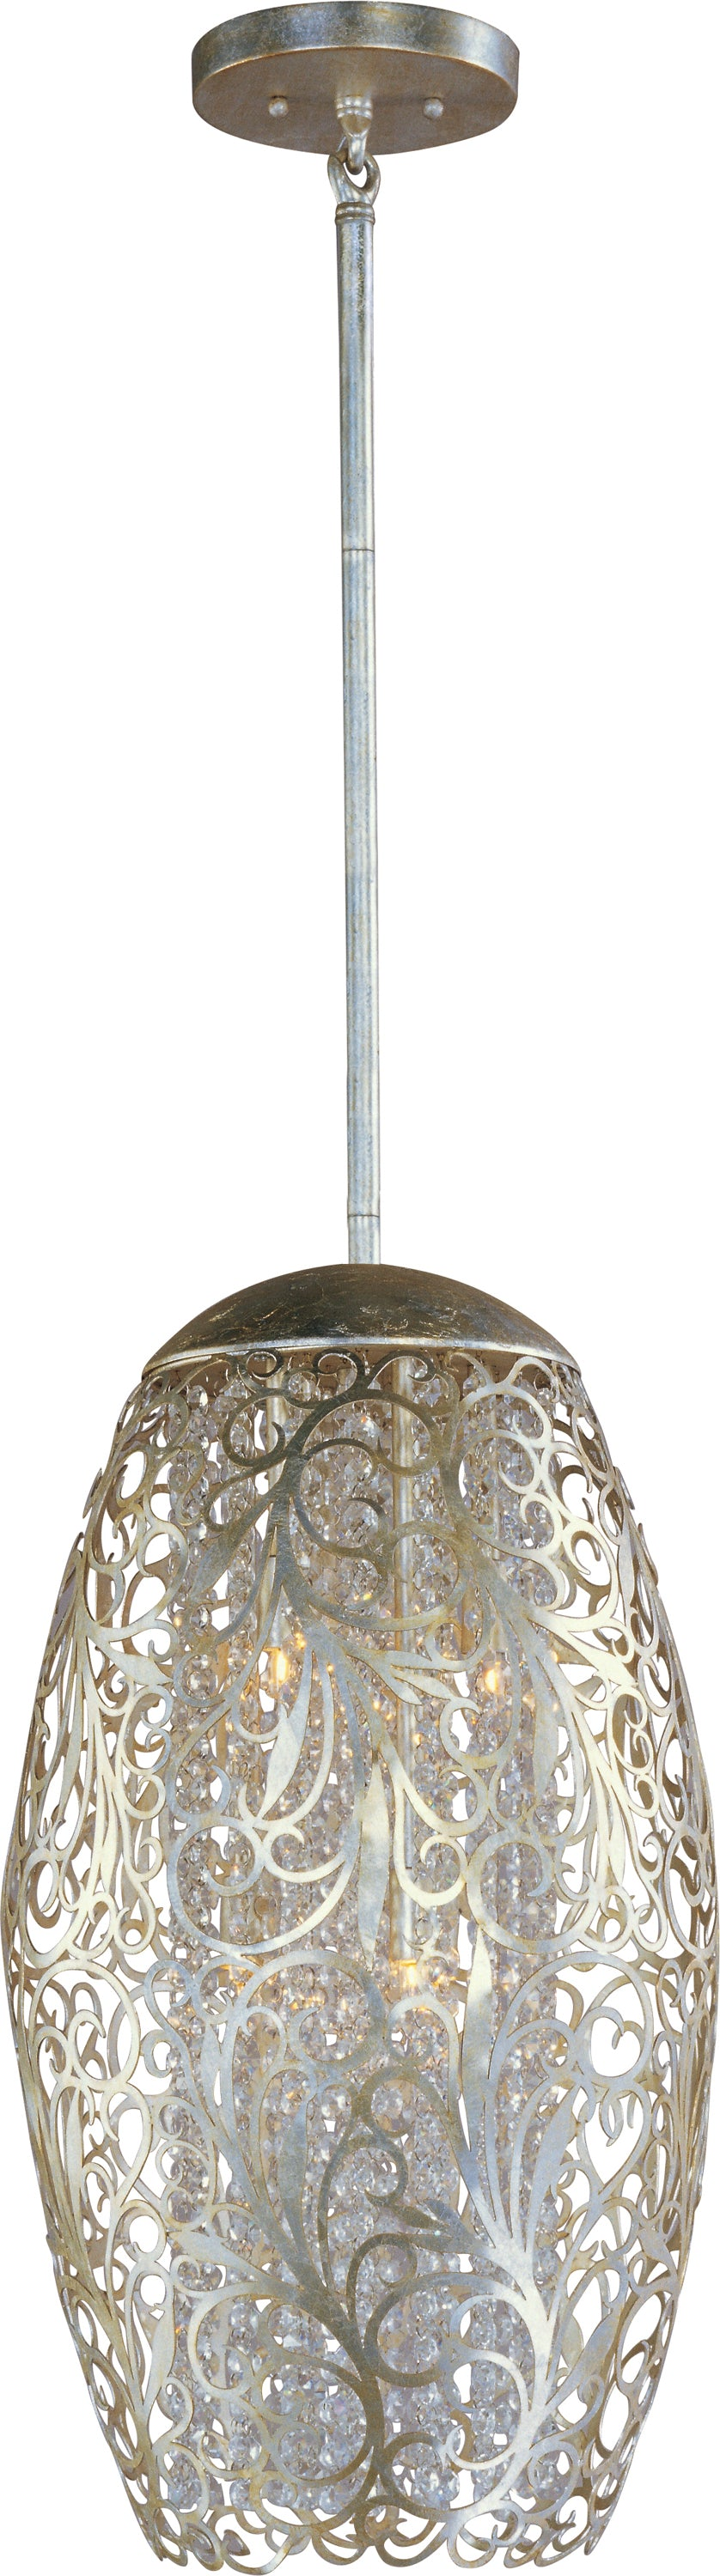 Maxim Lighting Arabesque 6-Light Pendant 24151BCGS